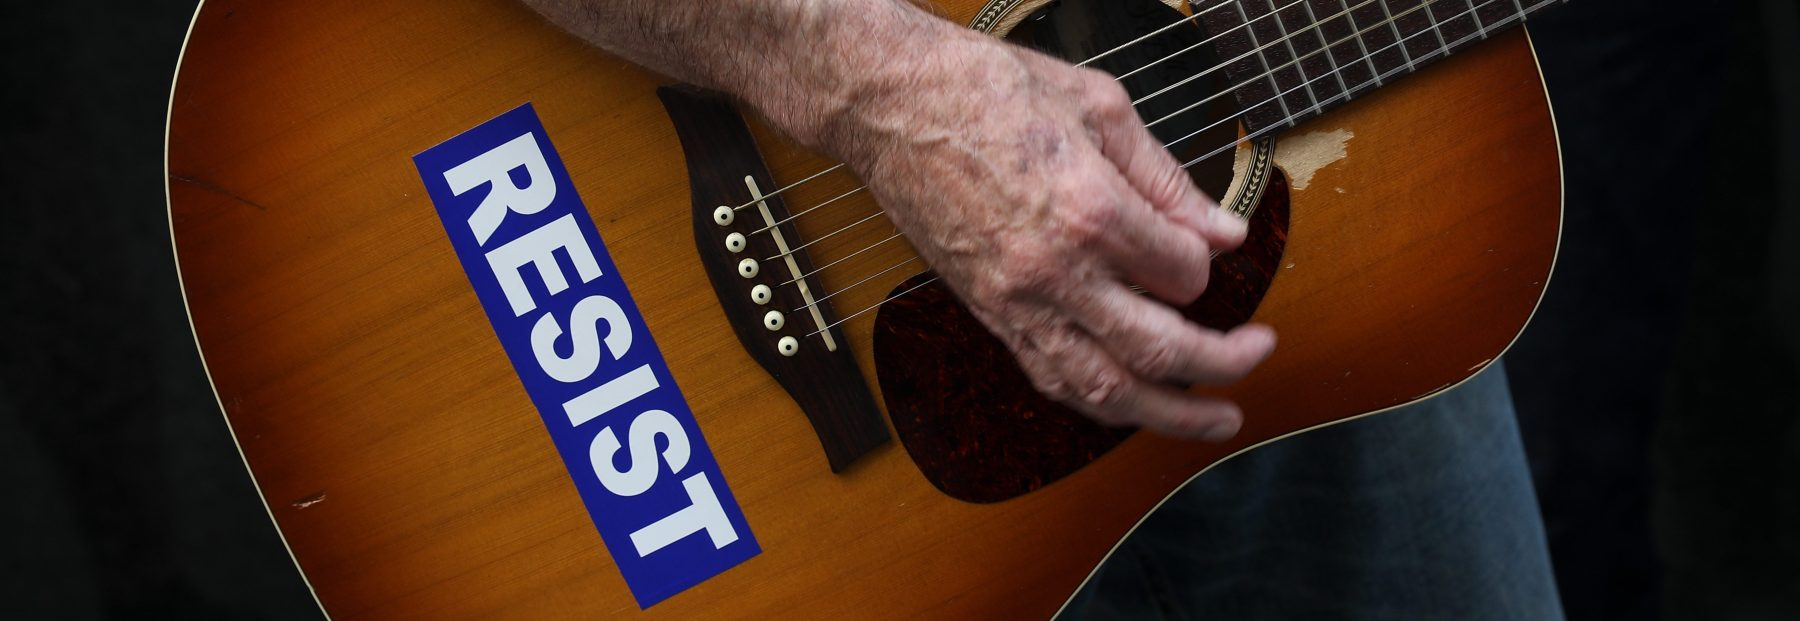 With his guitar adorned with a 'RESIST' sticker, a demonstrator plays music during a gathering to mark the 73rd anniversary of the Hiroshima and Nagasaki nuclear bombings, outside the Japanese Consulate in Midtown Manhattan, August 3, 2018 in New York City. (Photo by Drew Angerer/Getty Images)